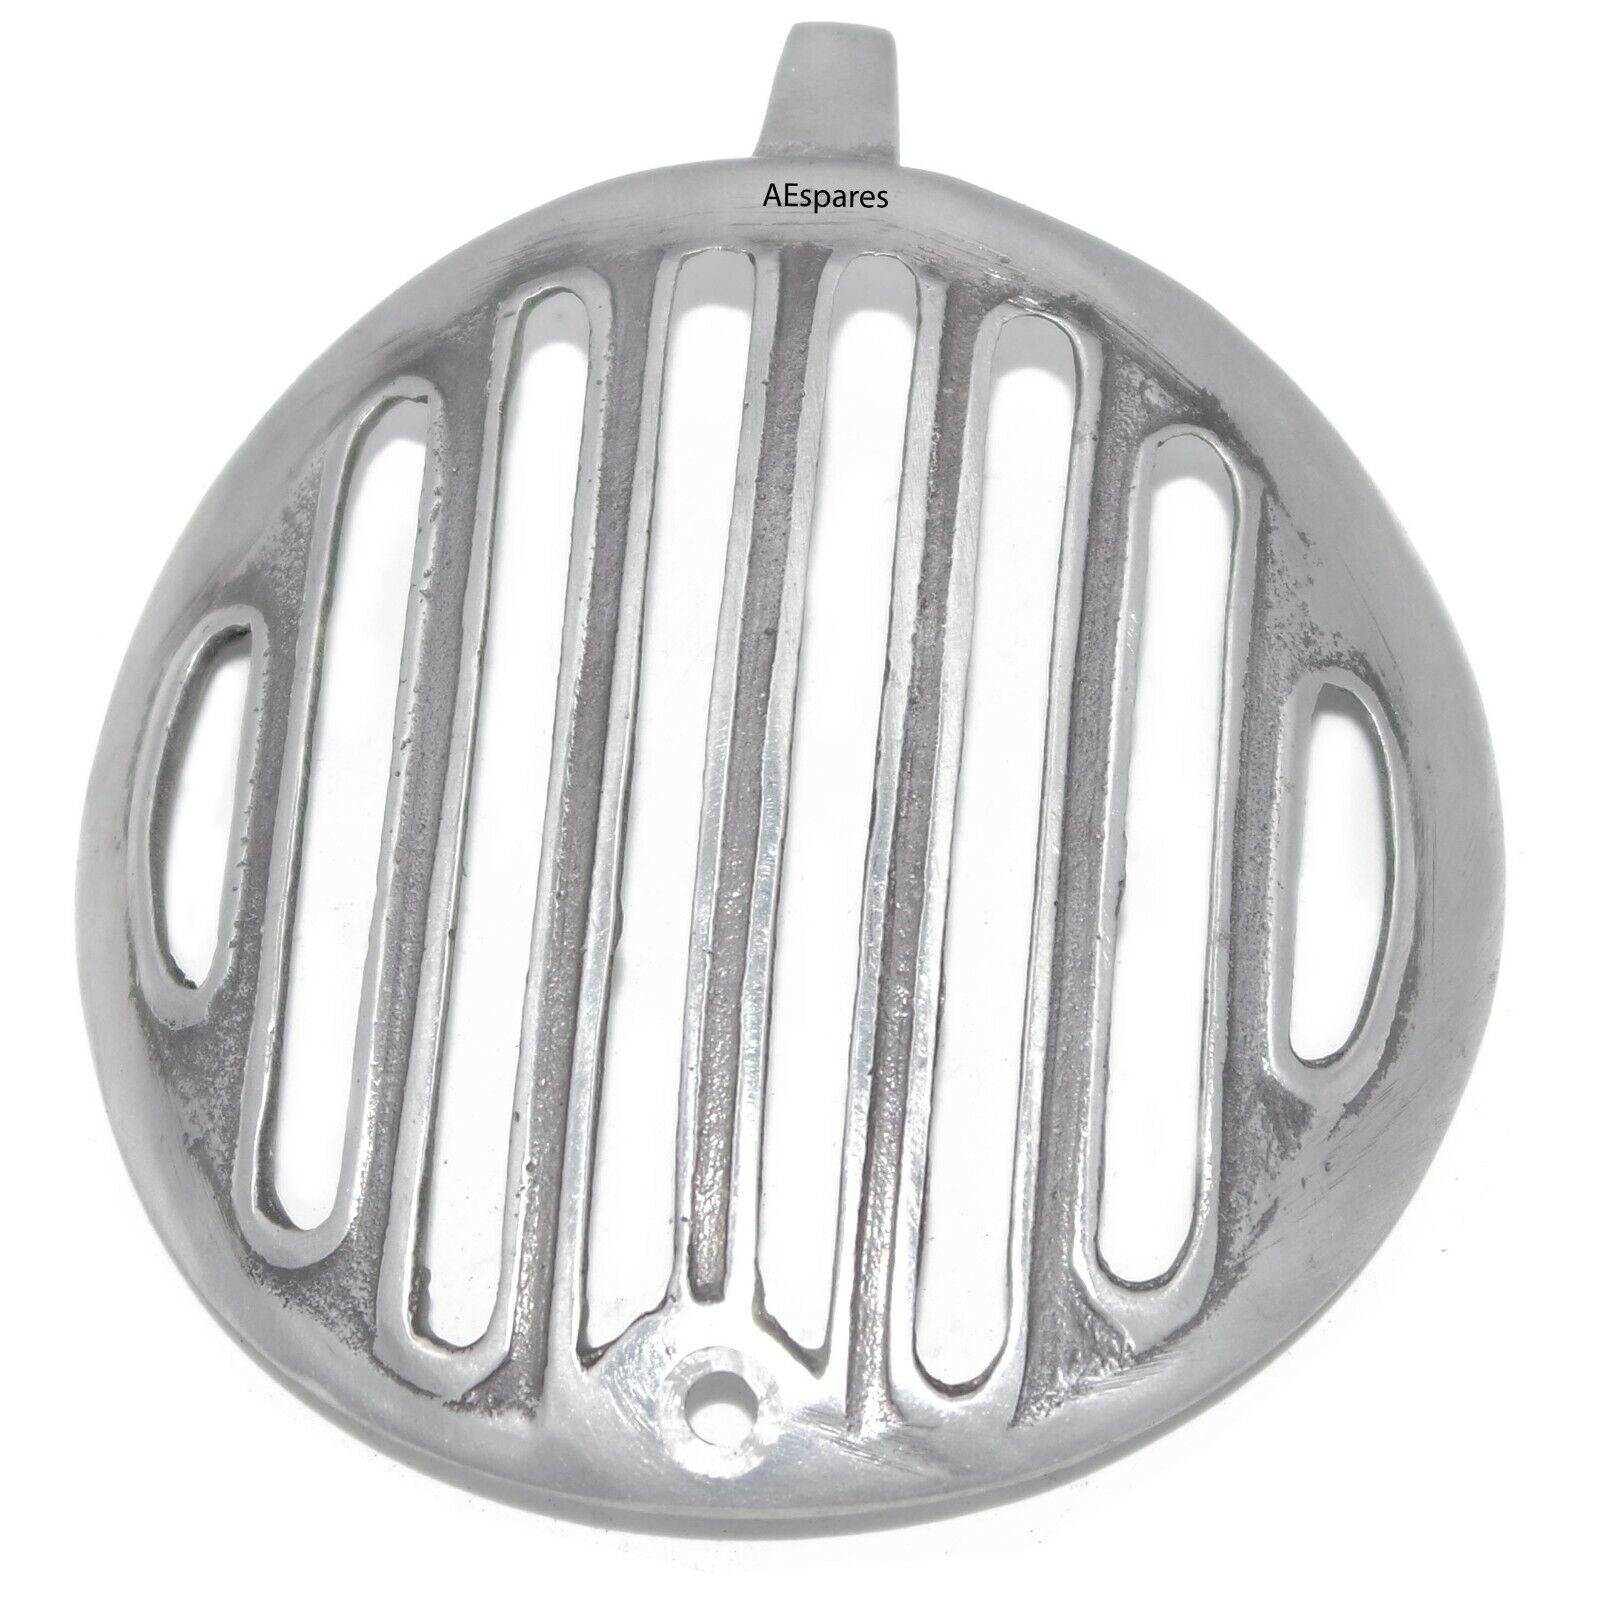 Lambretta LI Horn Grill  Alloy Polished Series 2 Early Round Case ECs